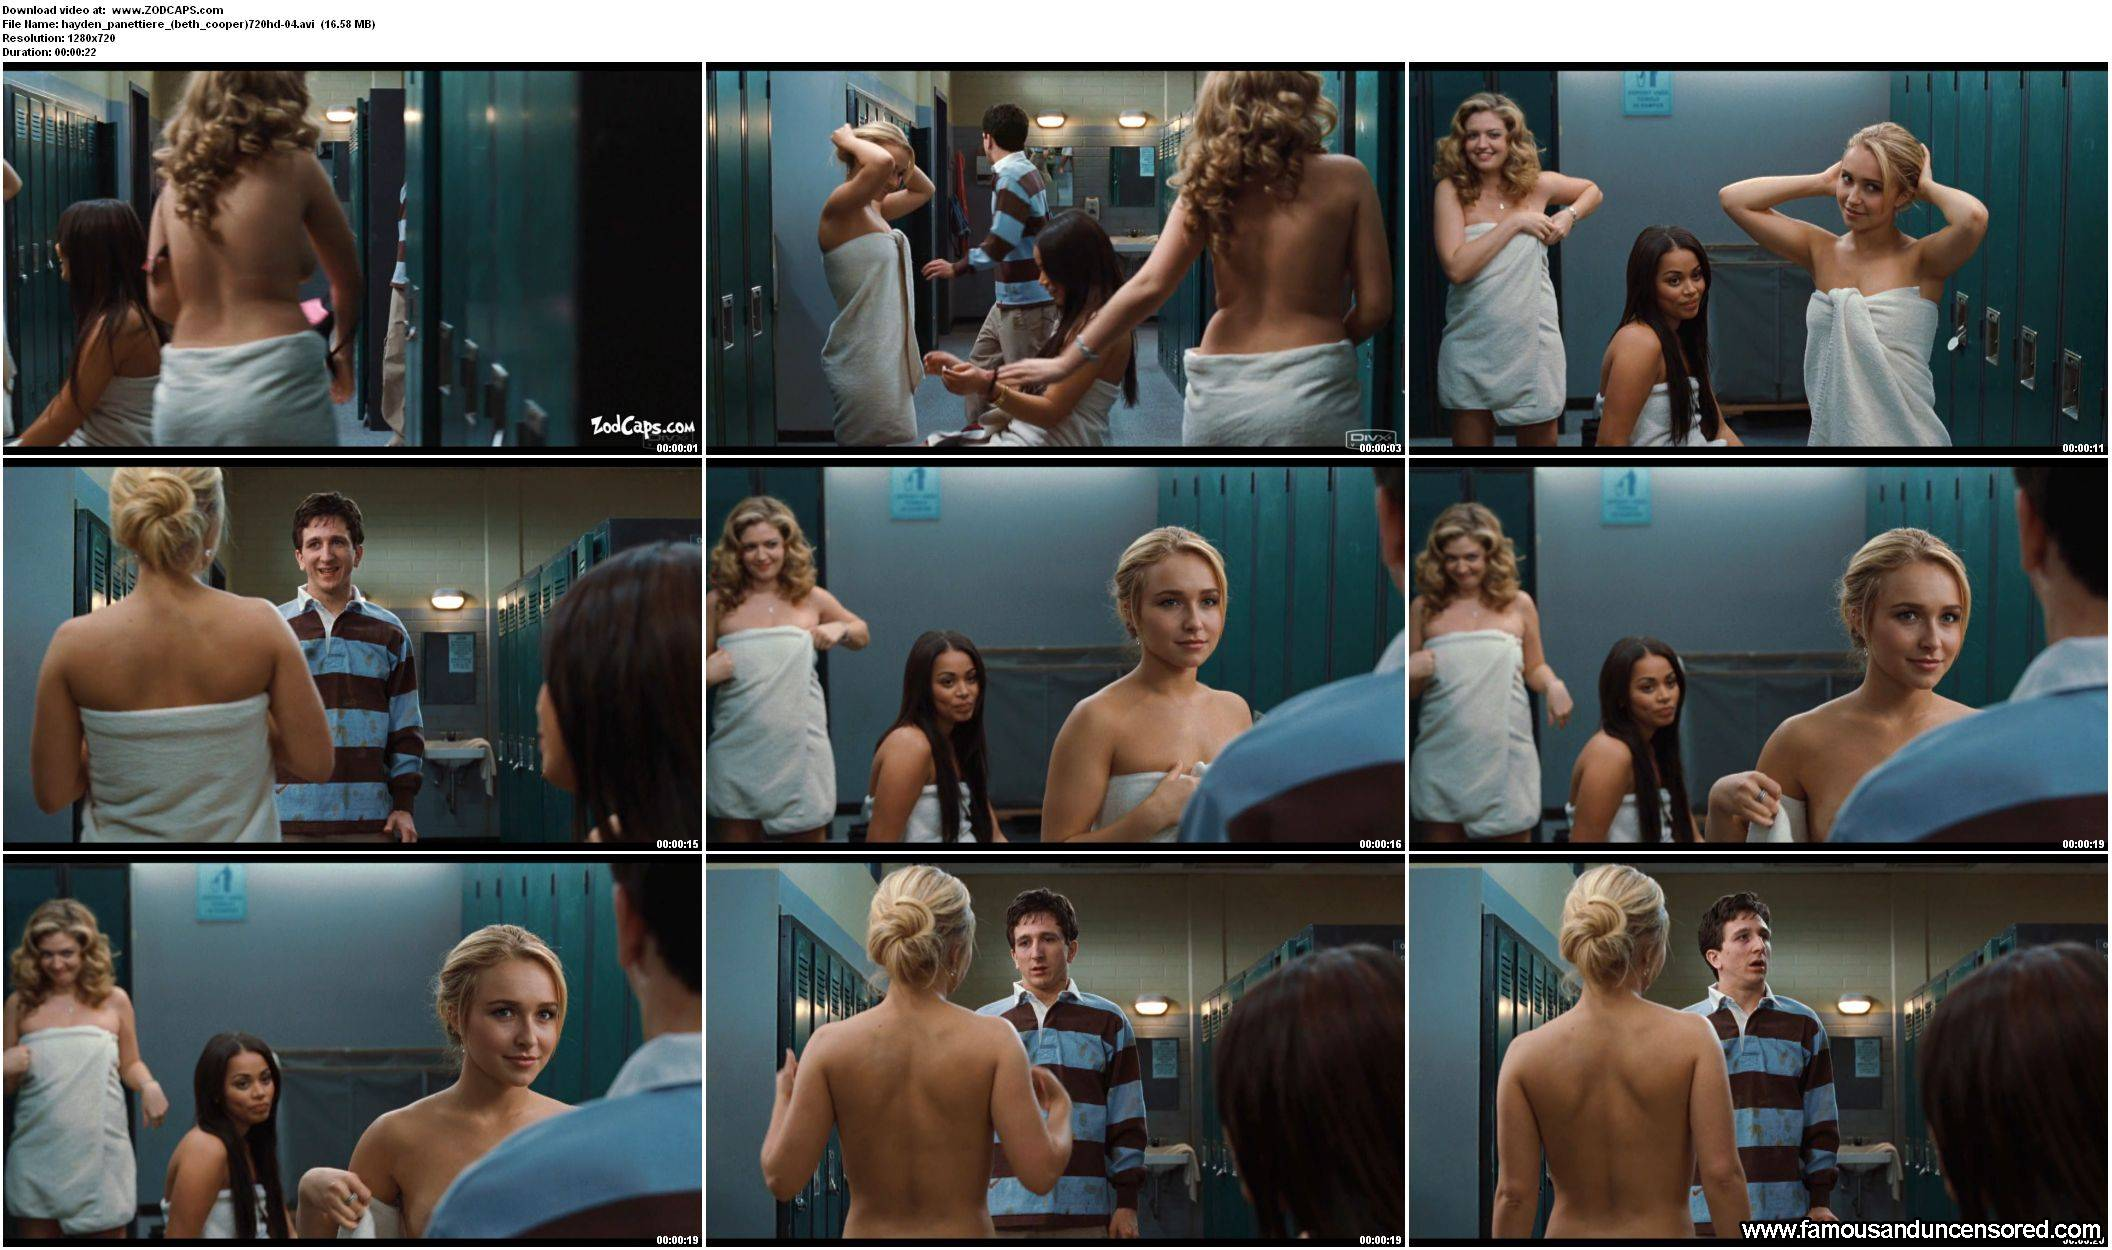 Hayden panettiere naked shower scene